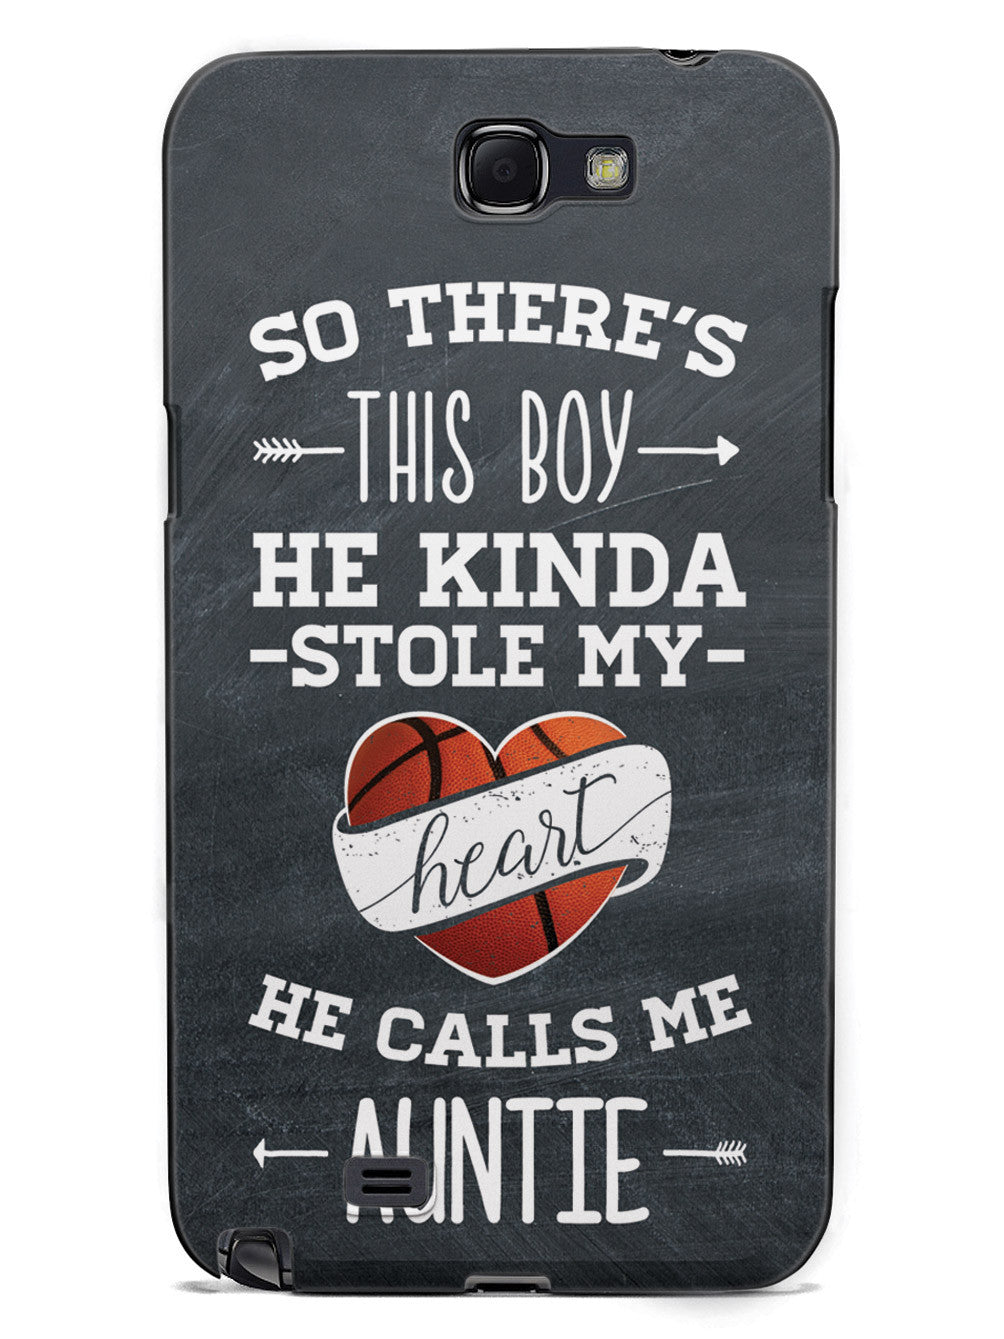 So there's this Boy - Basketball Player - Auntie Case